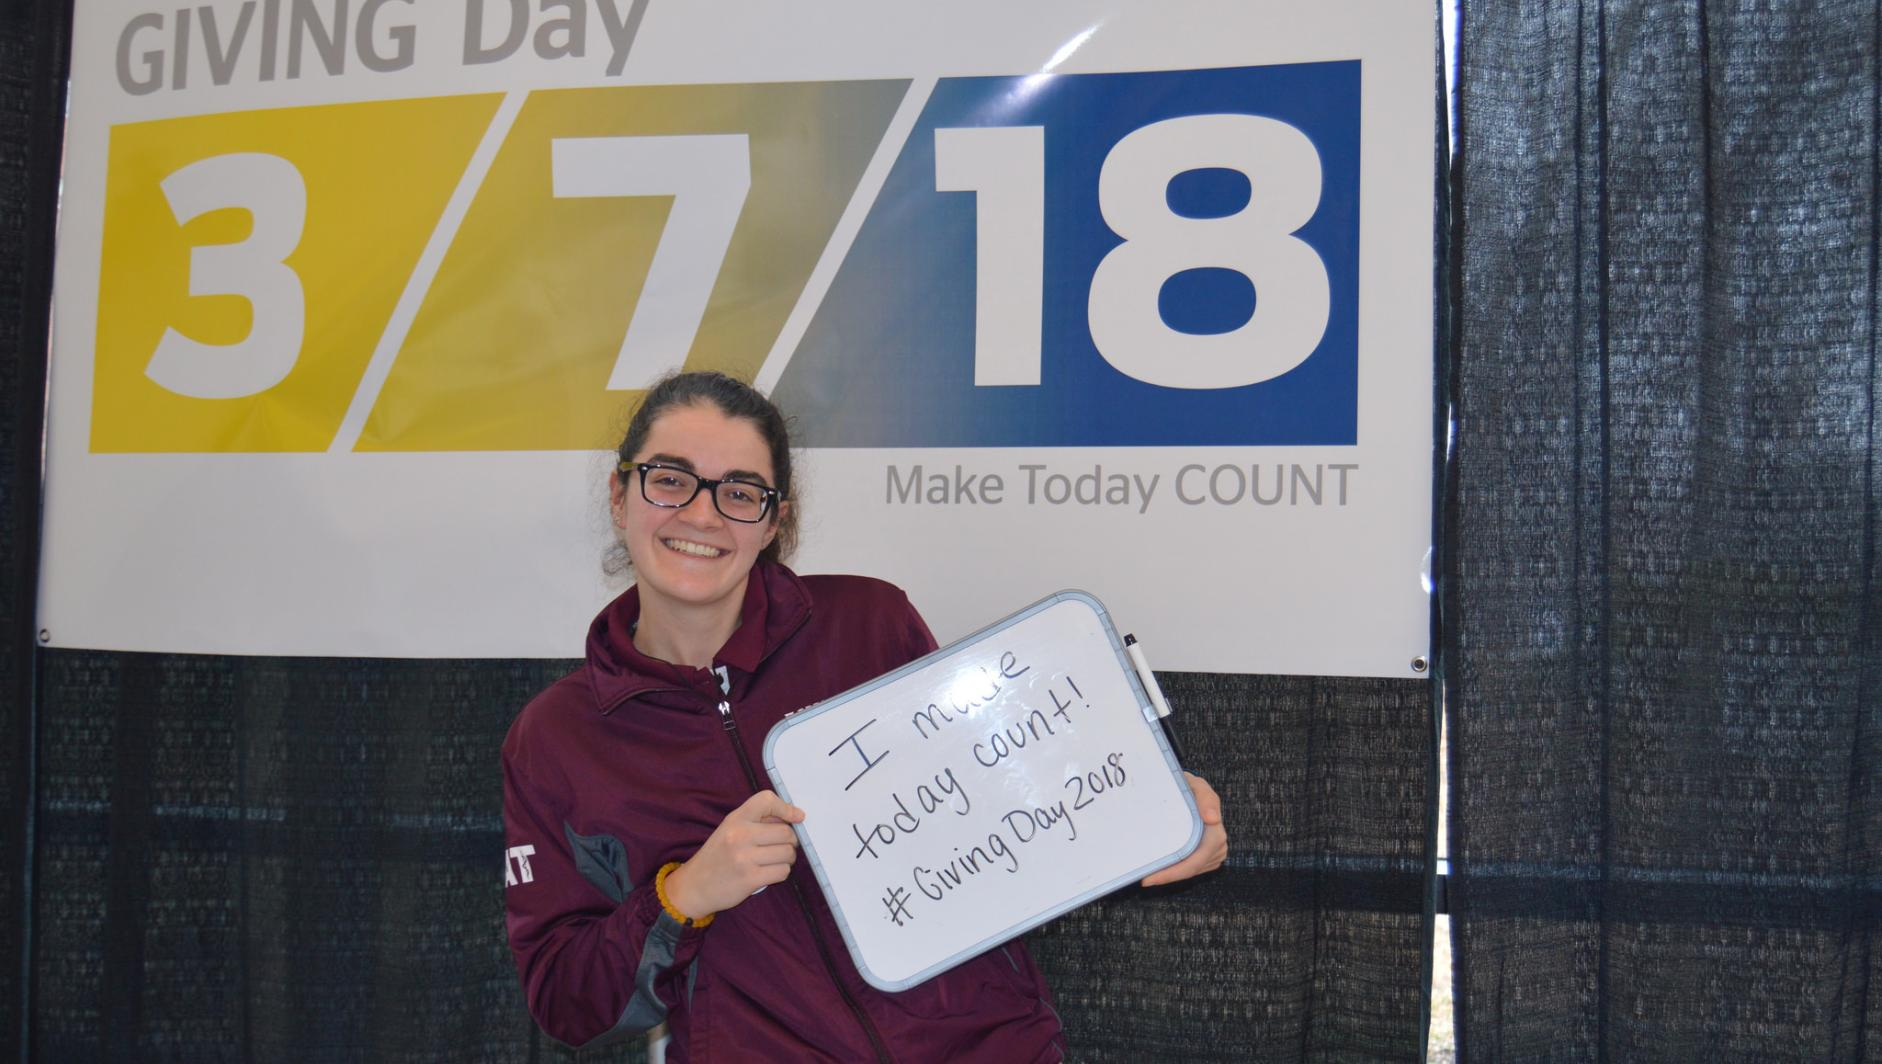 A student holds up a Giving Day sign.